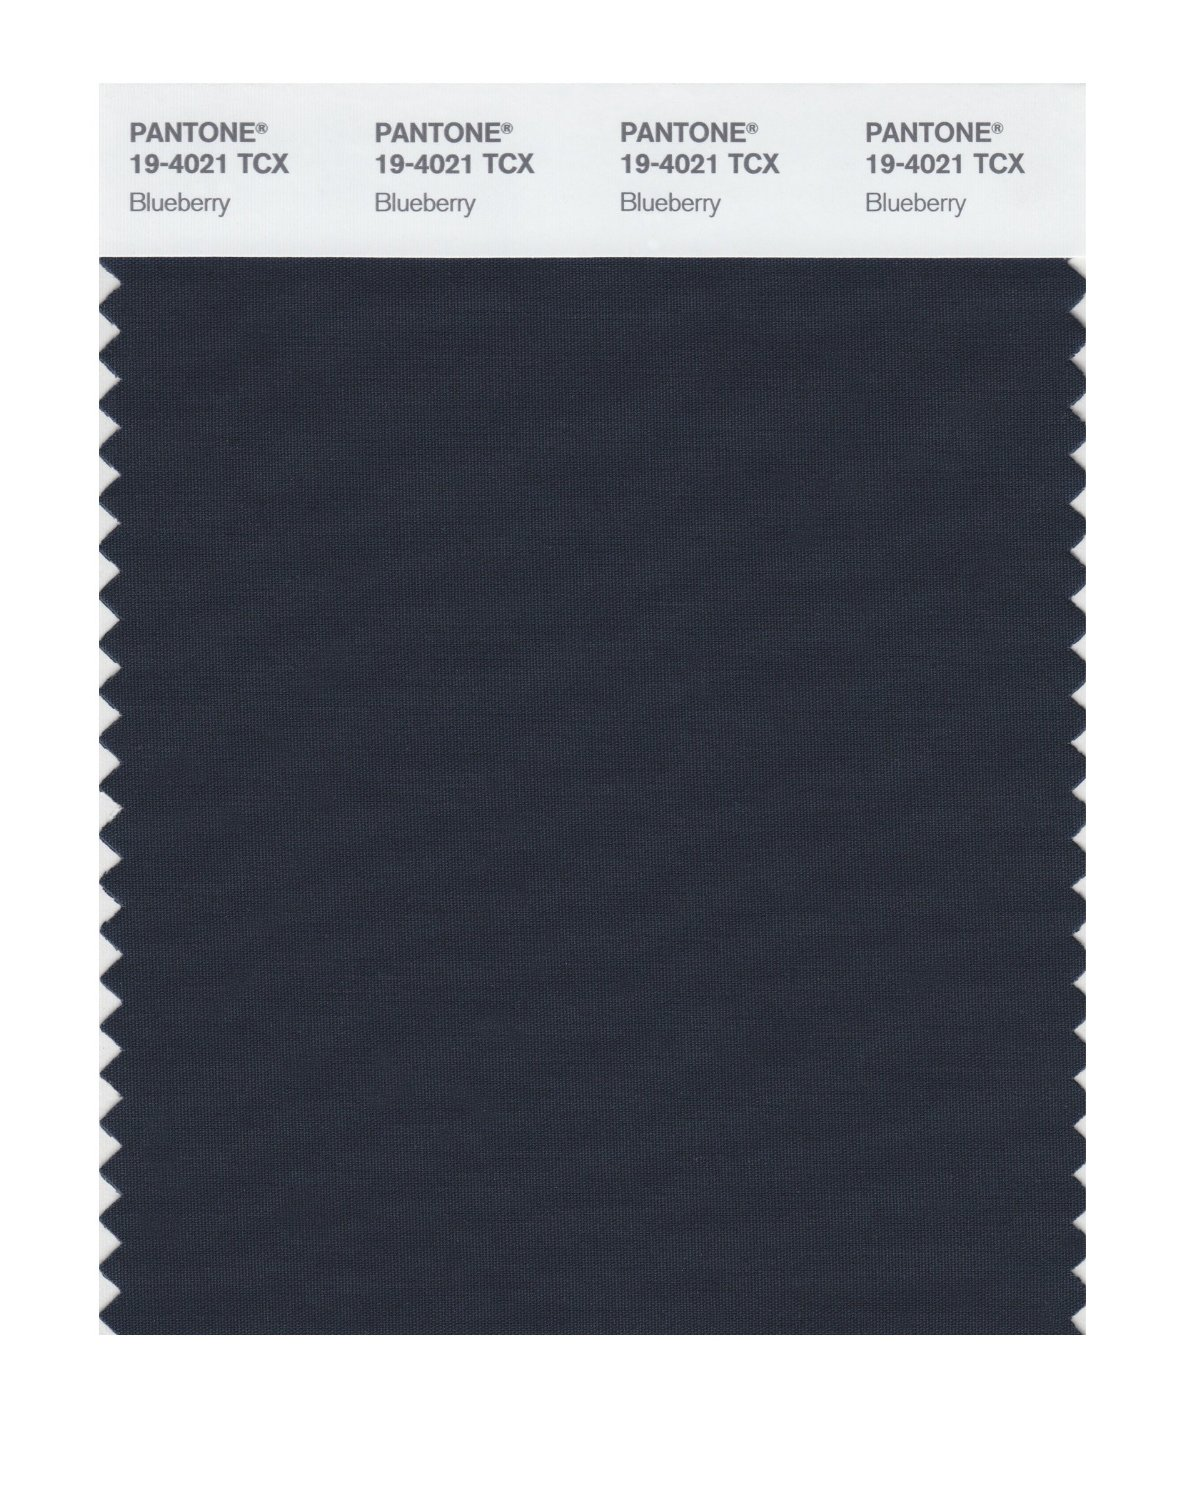 Pantone Smart Swatch 19-4021 Blueberry